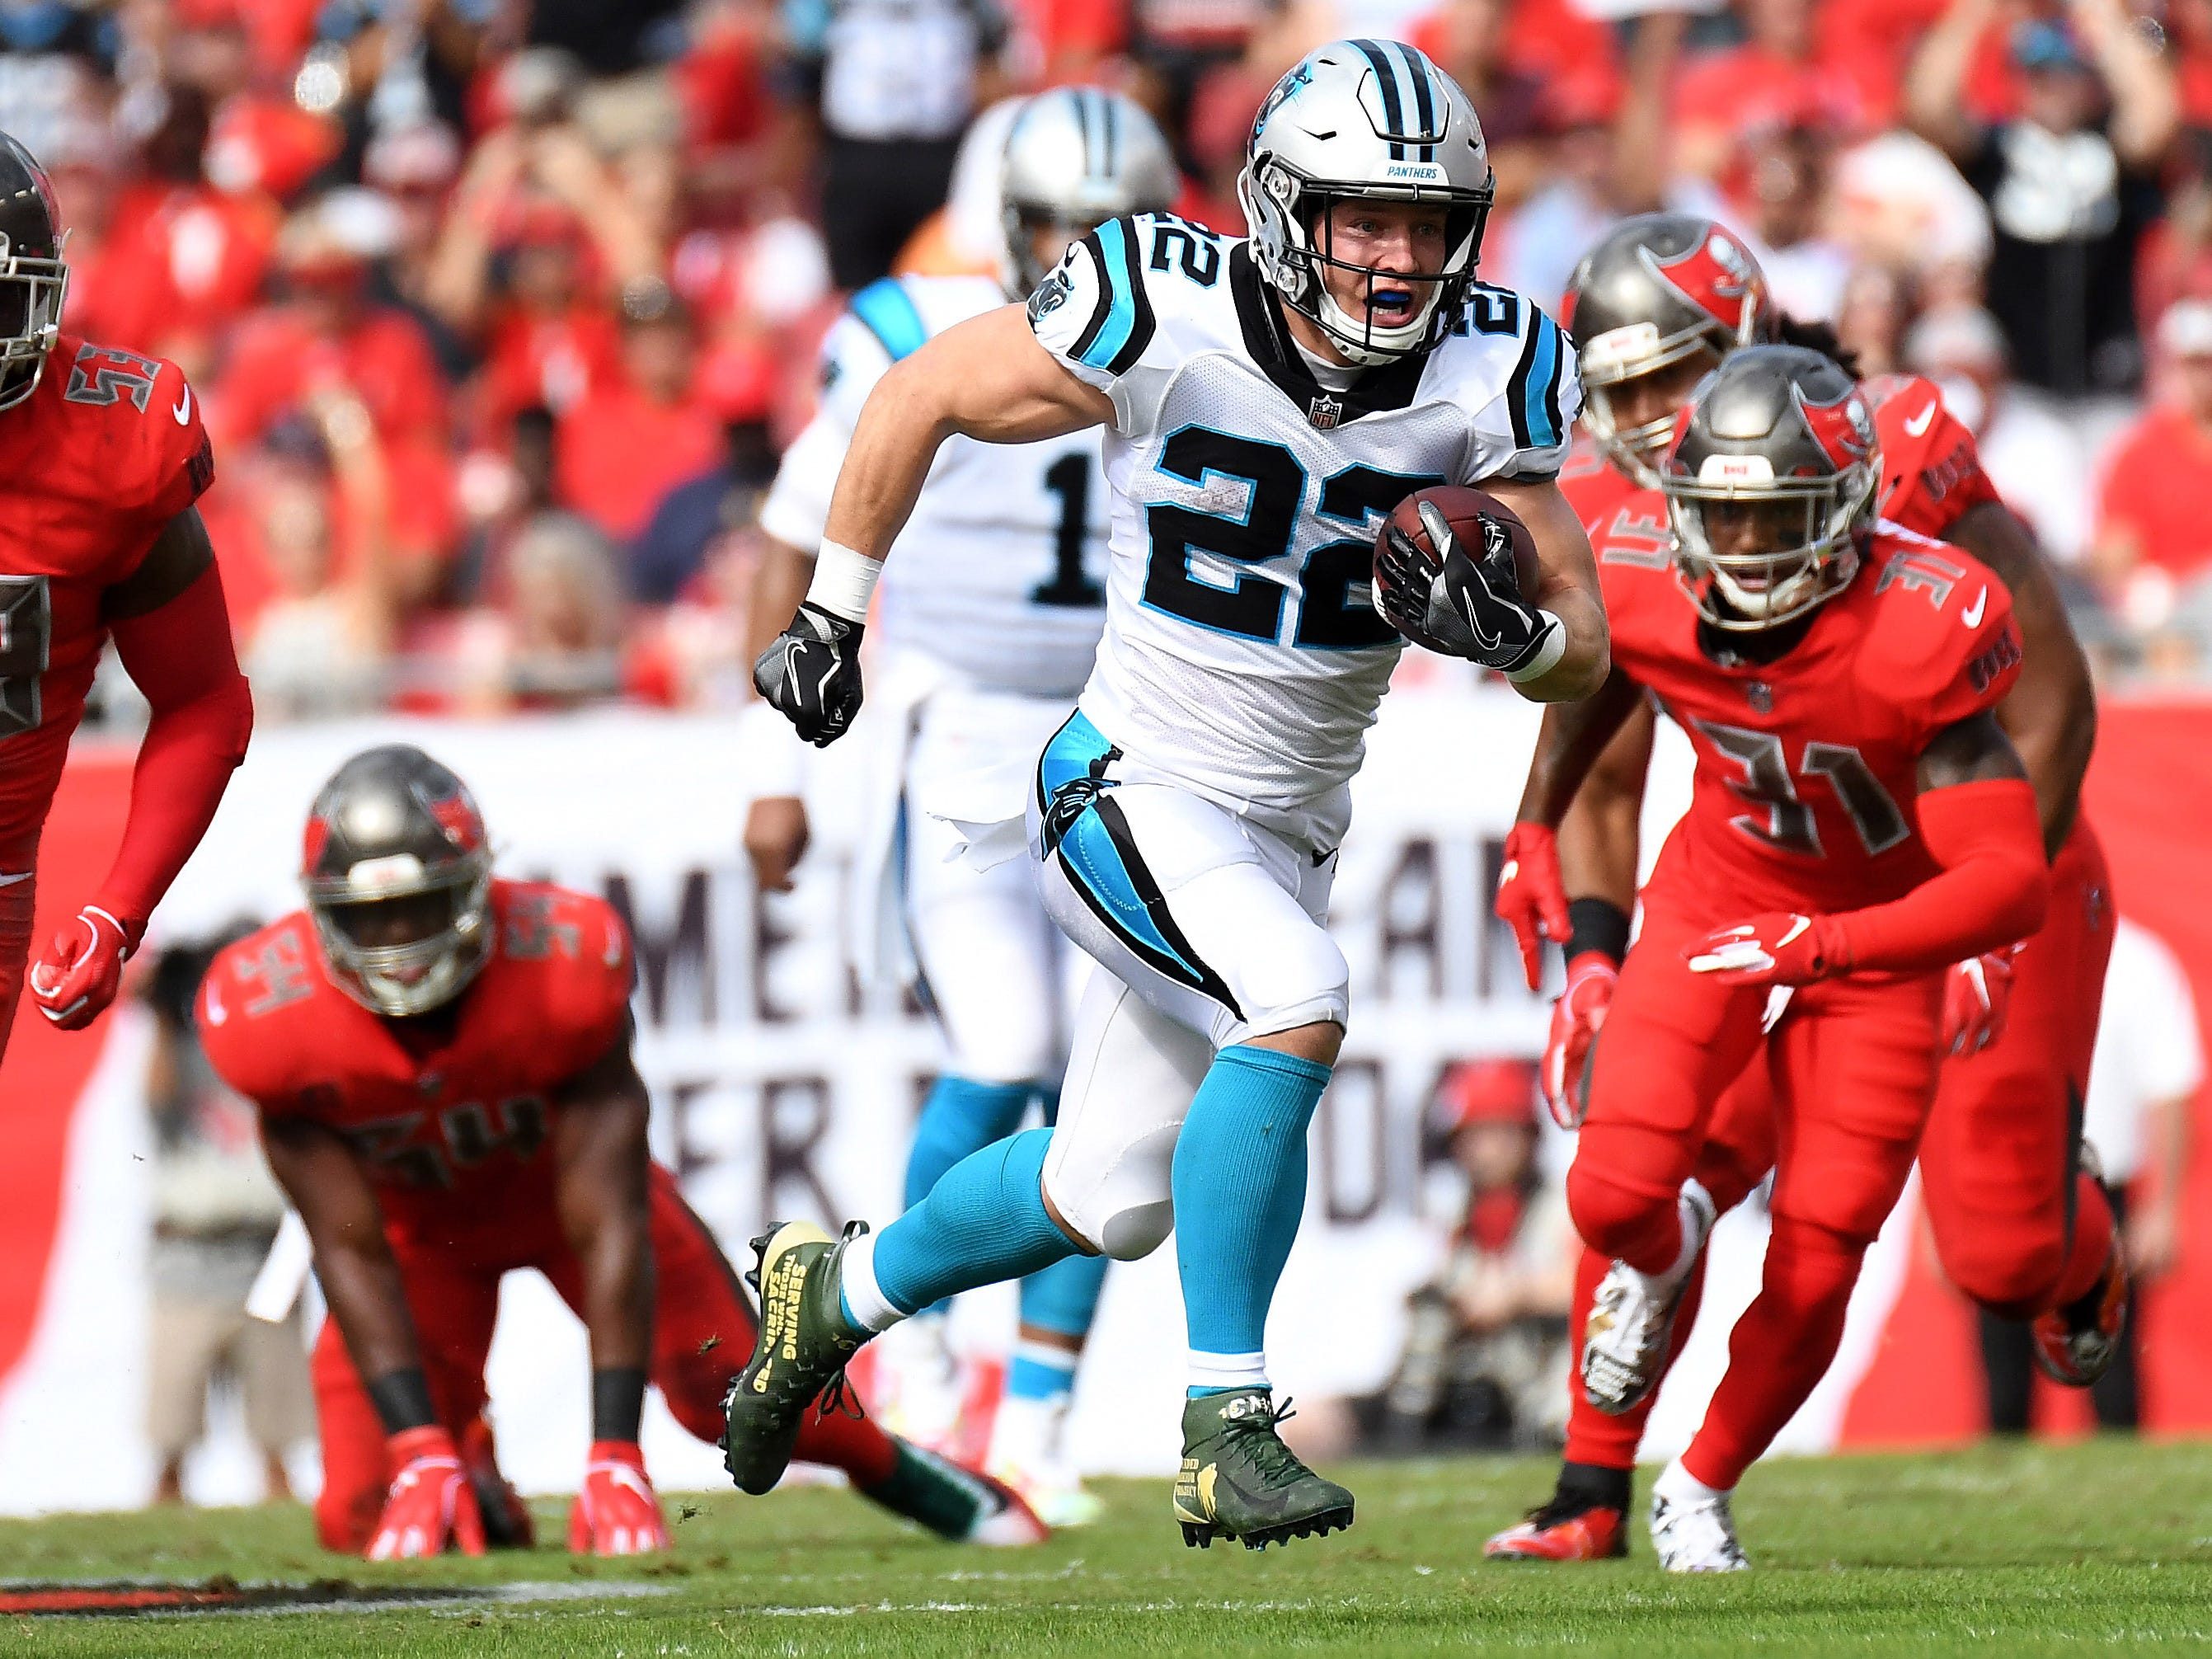 Carolina Panthers running back Christian McCaffrey (22)  runs the ball  in the first half against the Tampa Bay Buccaneers at Raymond James Stadium.